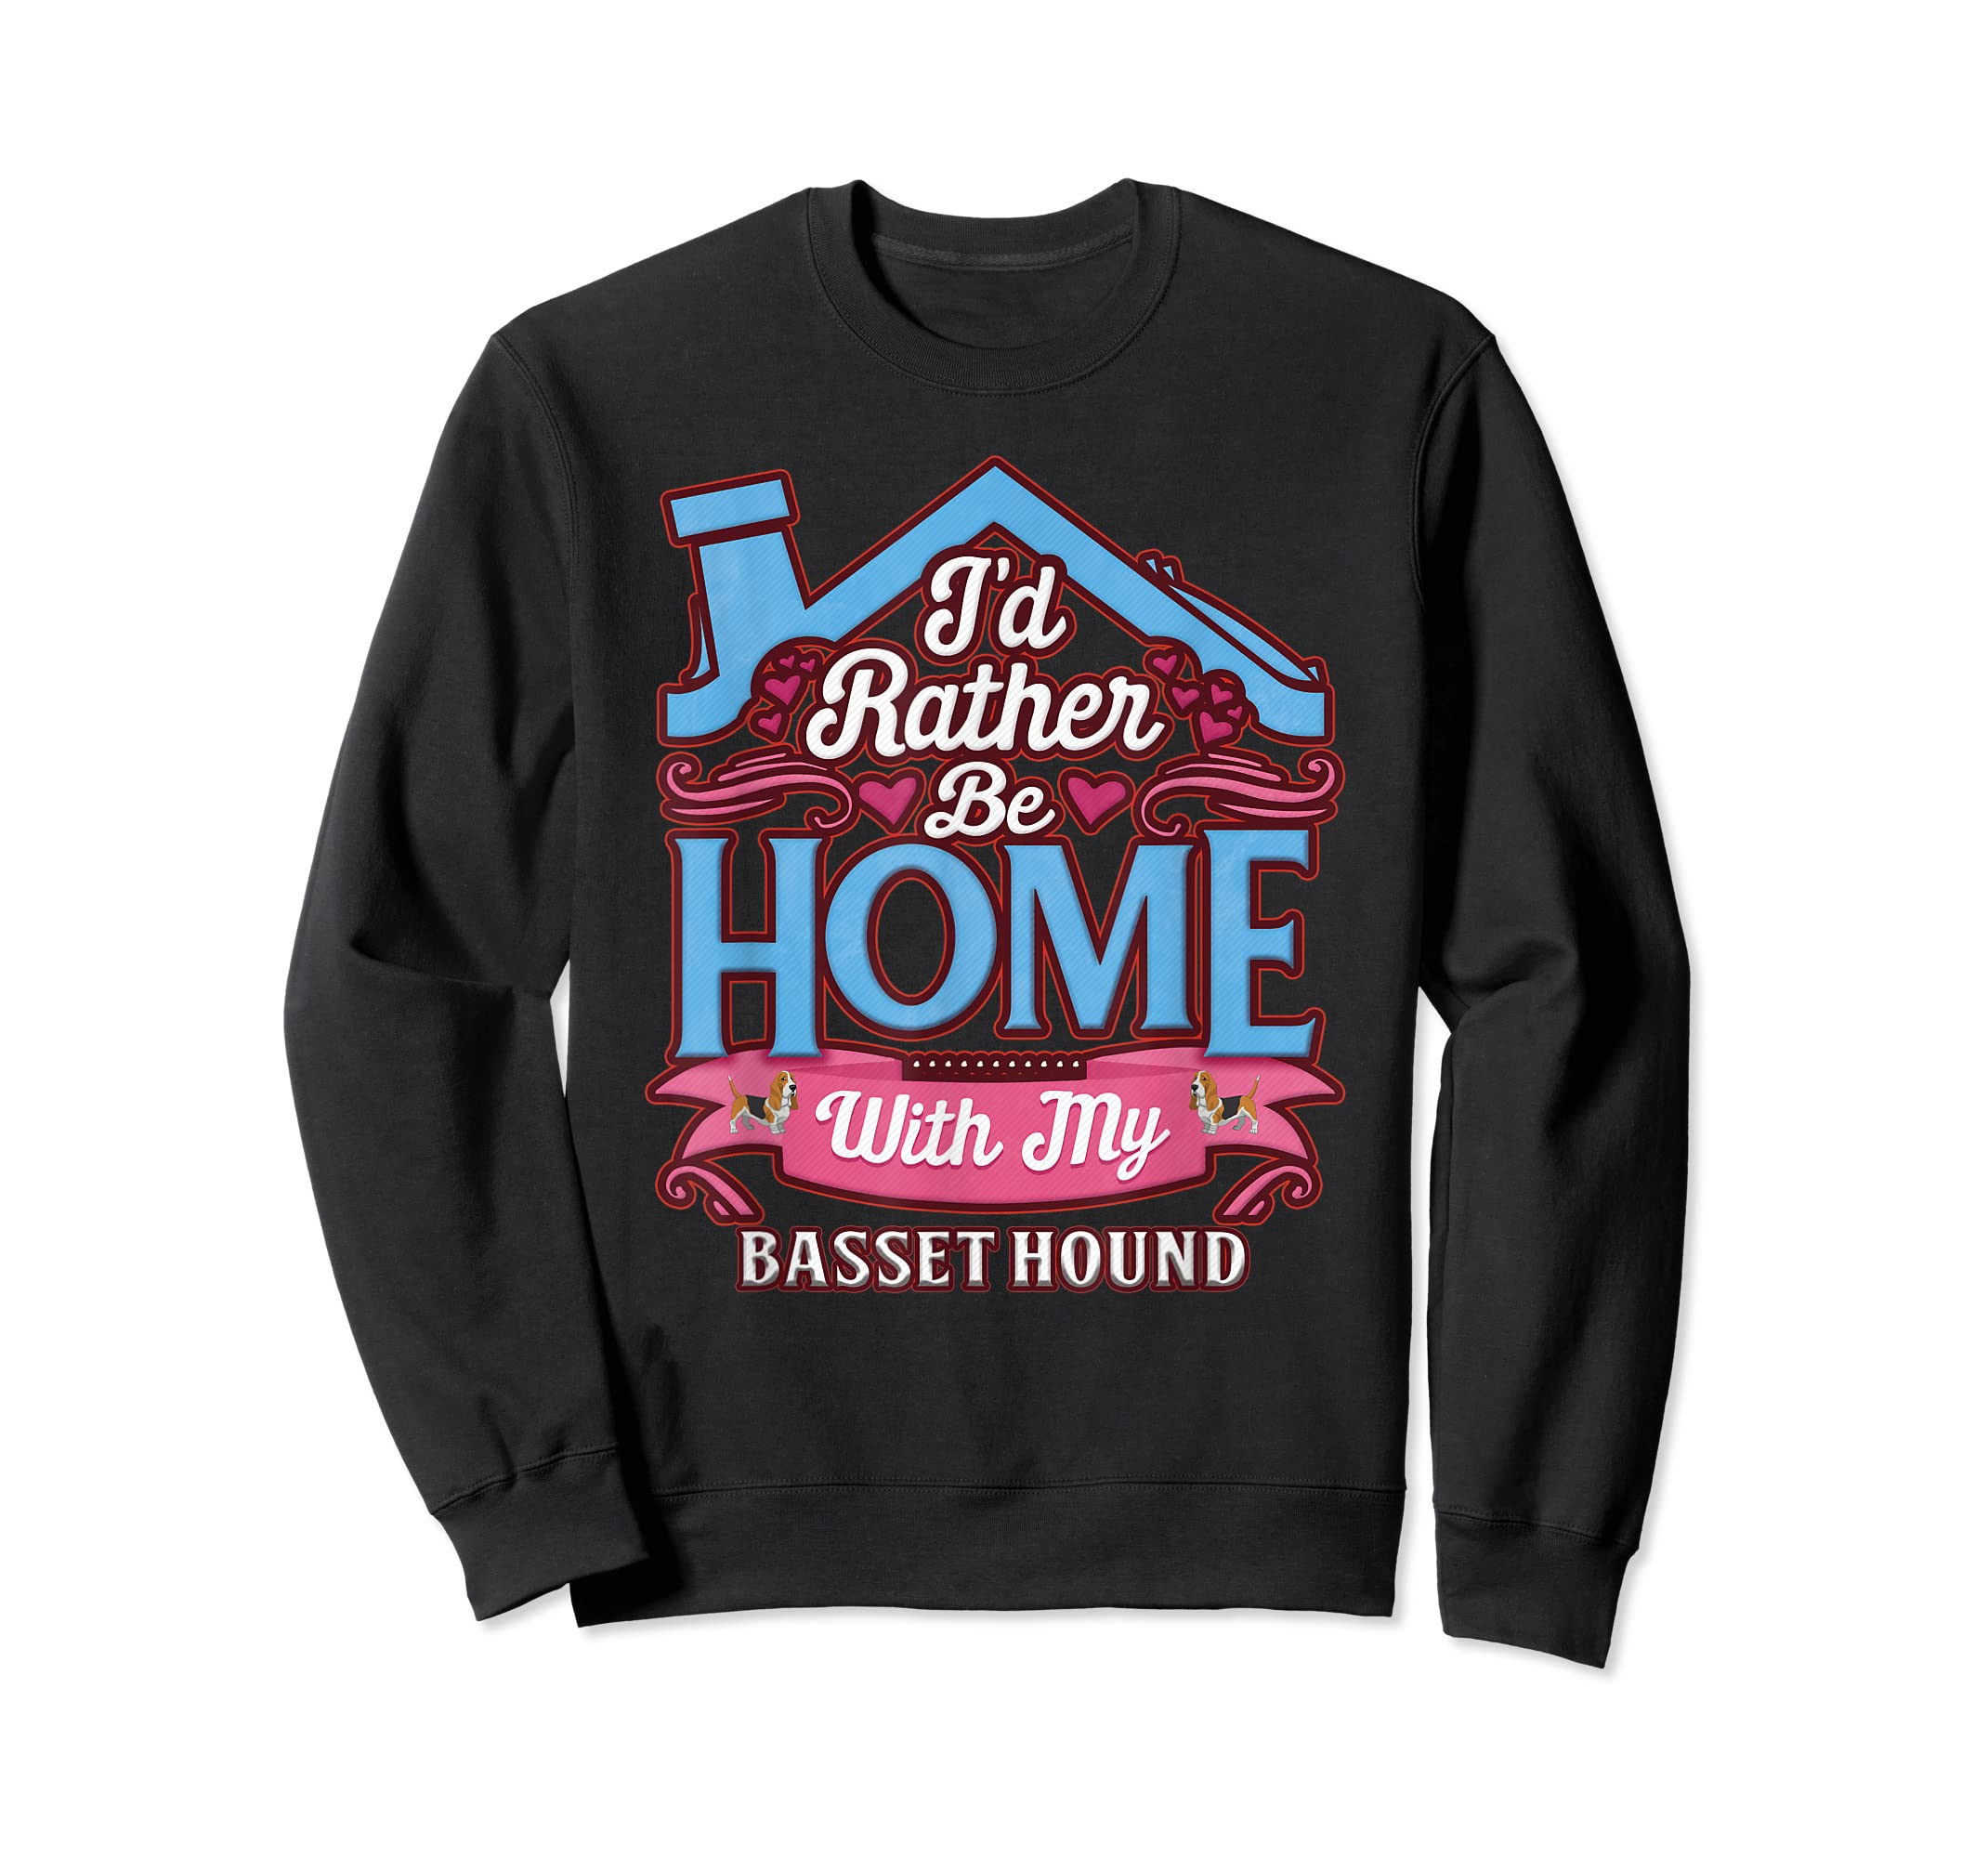 Basset Hound Home Dog T Shirt-Sweatshirt-Black